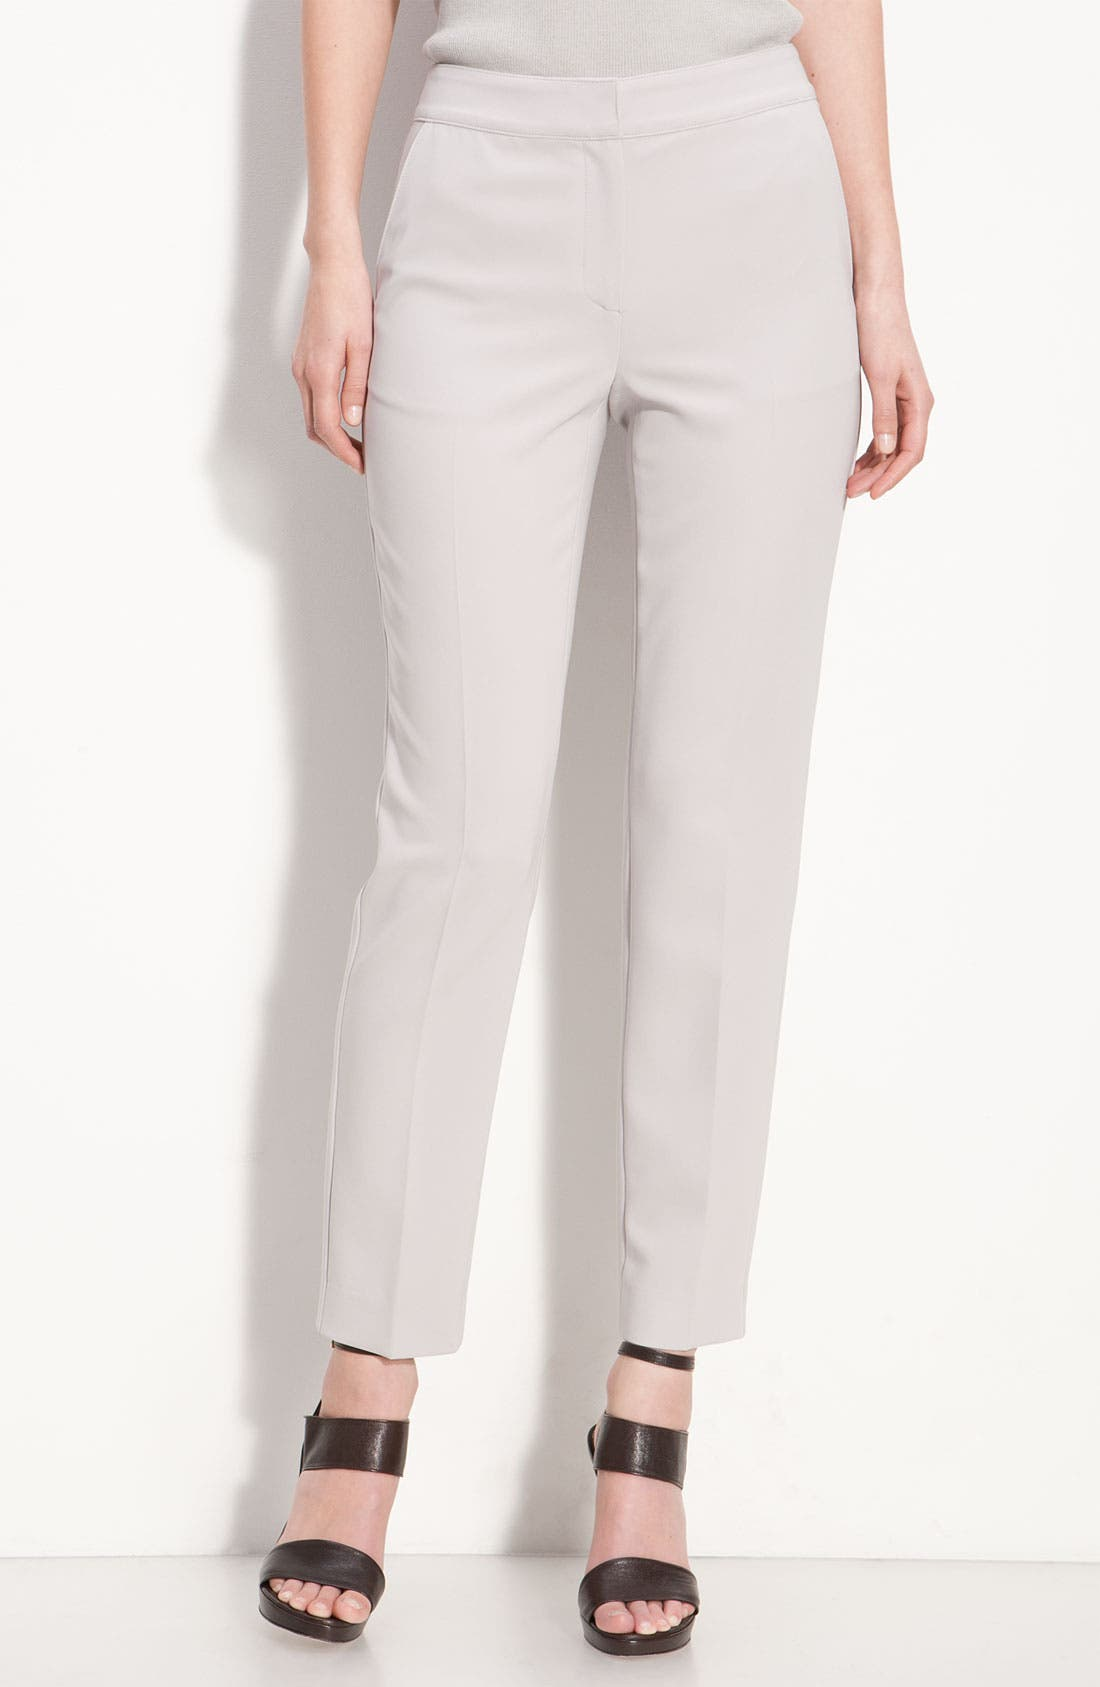 Alternate Image 1 Selected - St. John Collection Crepe Marocain Crop Pants